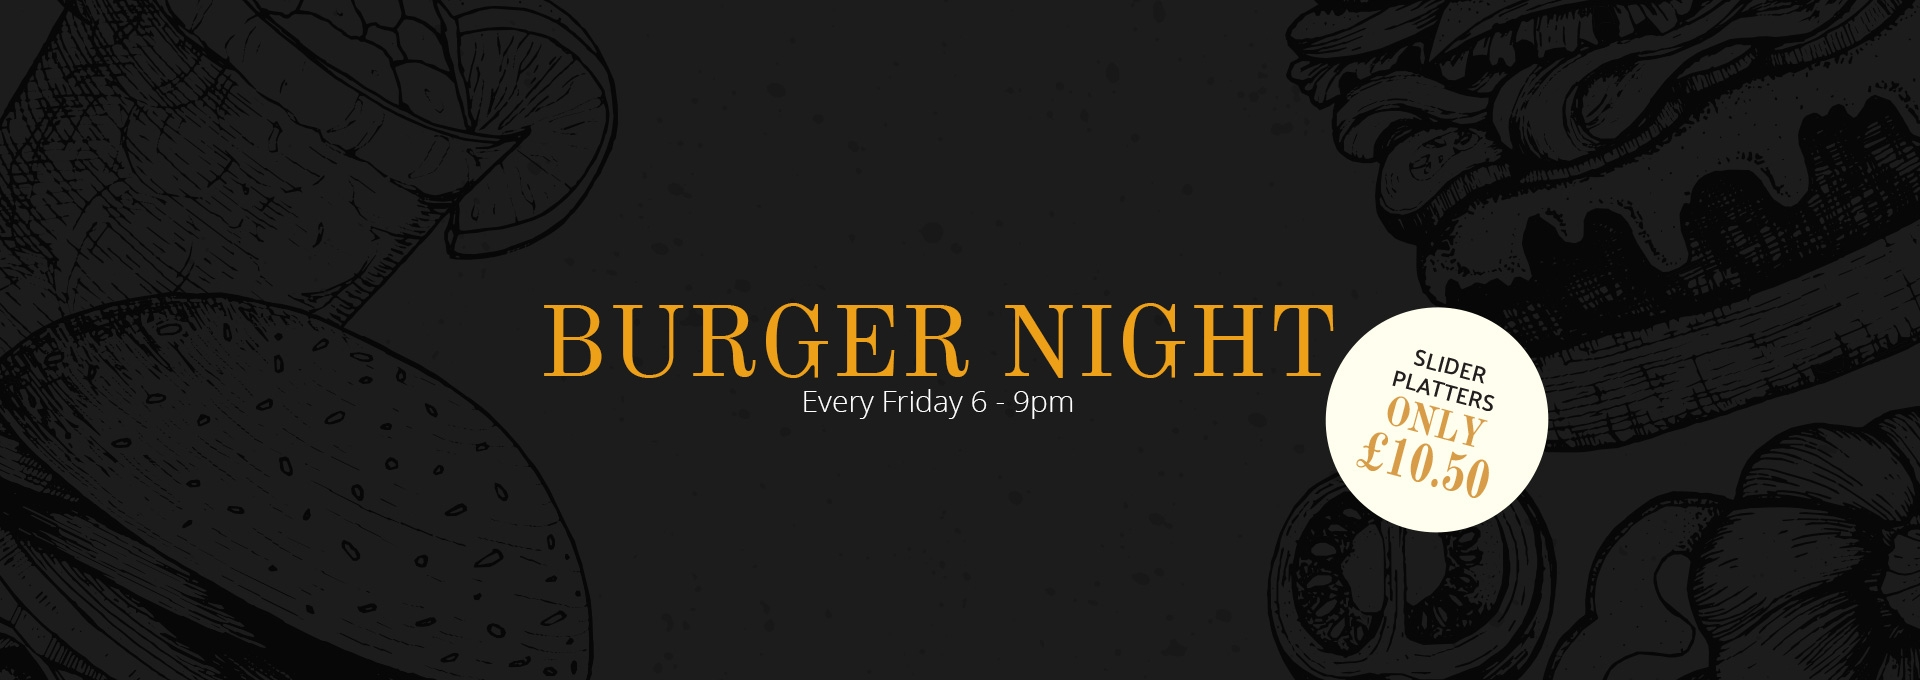 Burger night every friday 6-8pm slider platters only £10.50